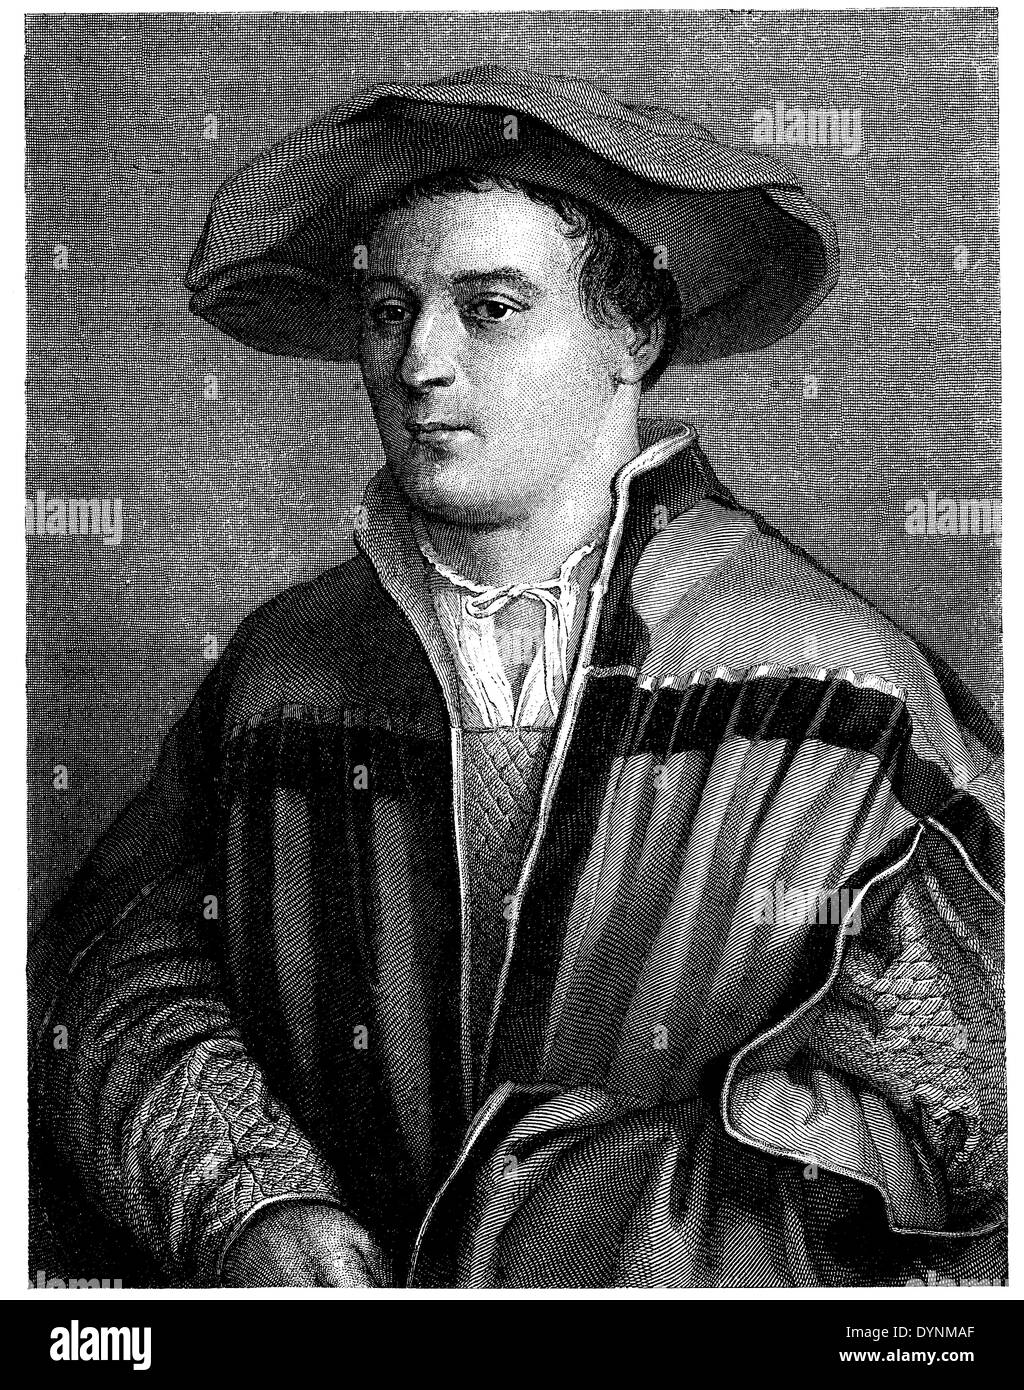 Hans Holbein the Younger. After a self-portrait engraved by Friedrich Weber - Stock Image